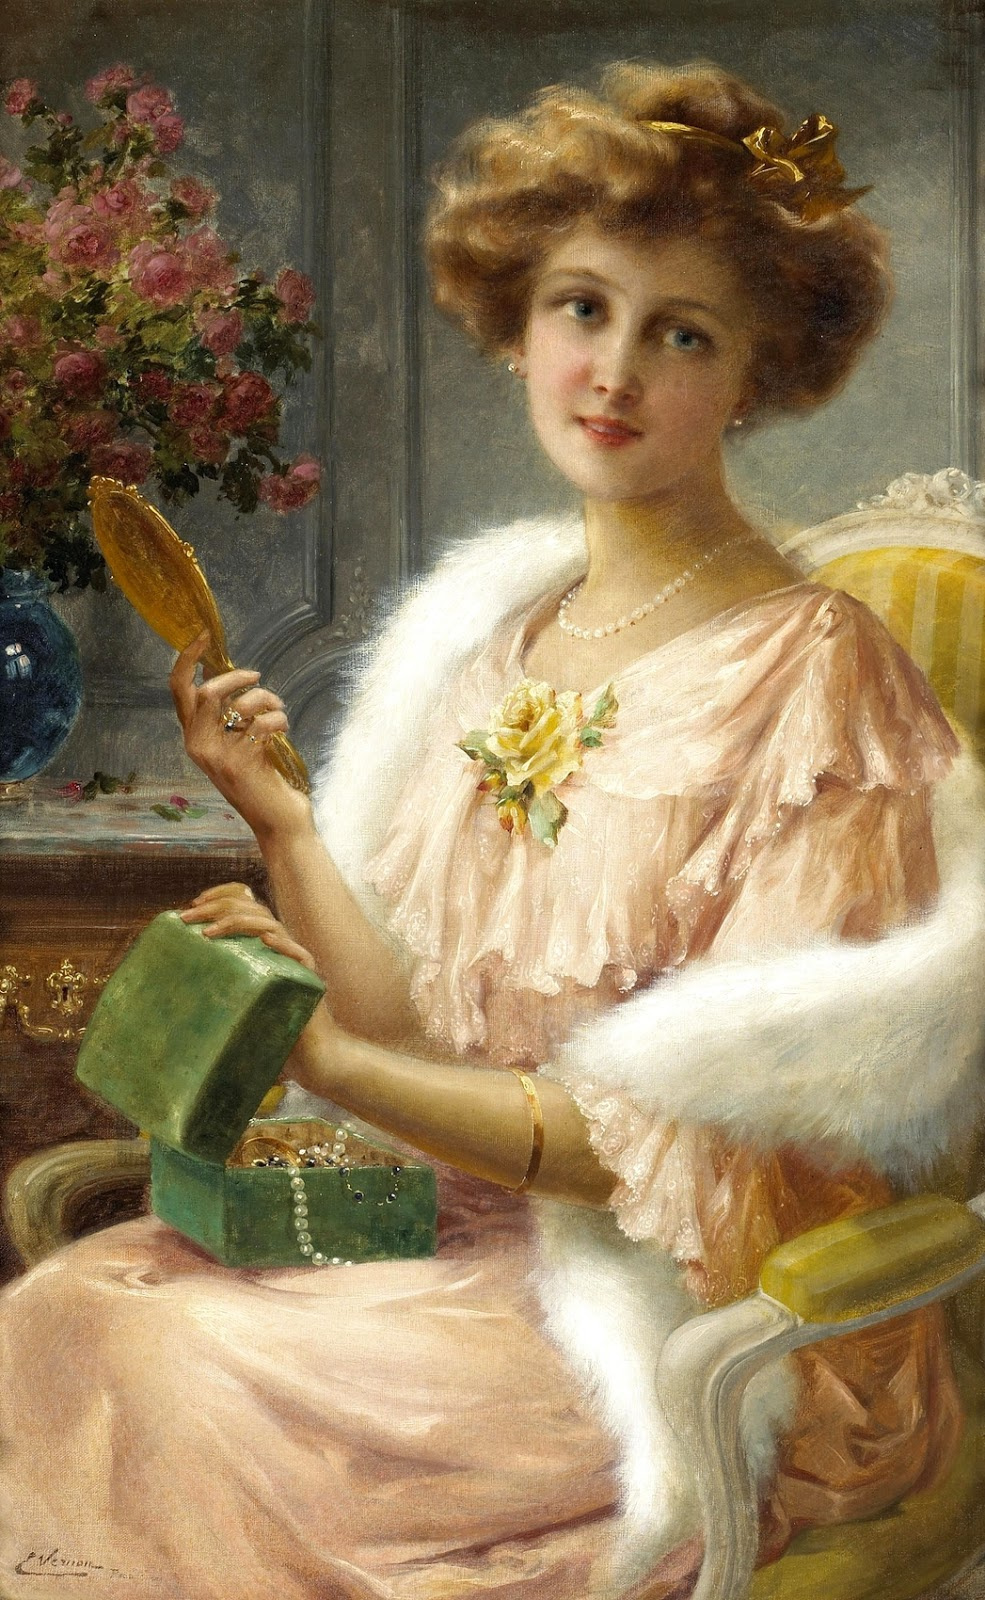 Emile Vernon. Young lady with mirror. 1909